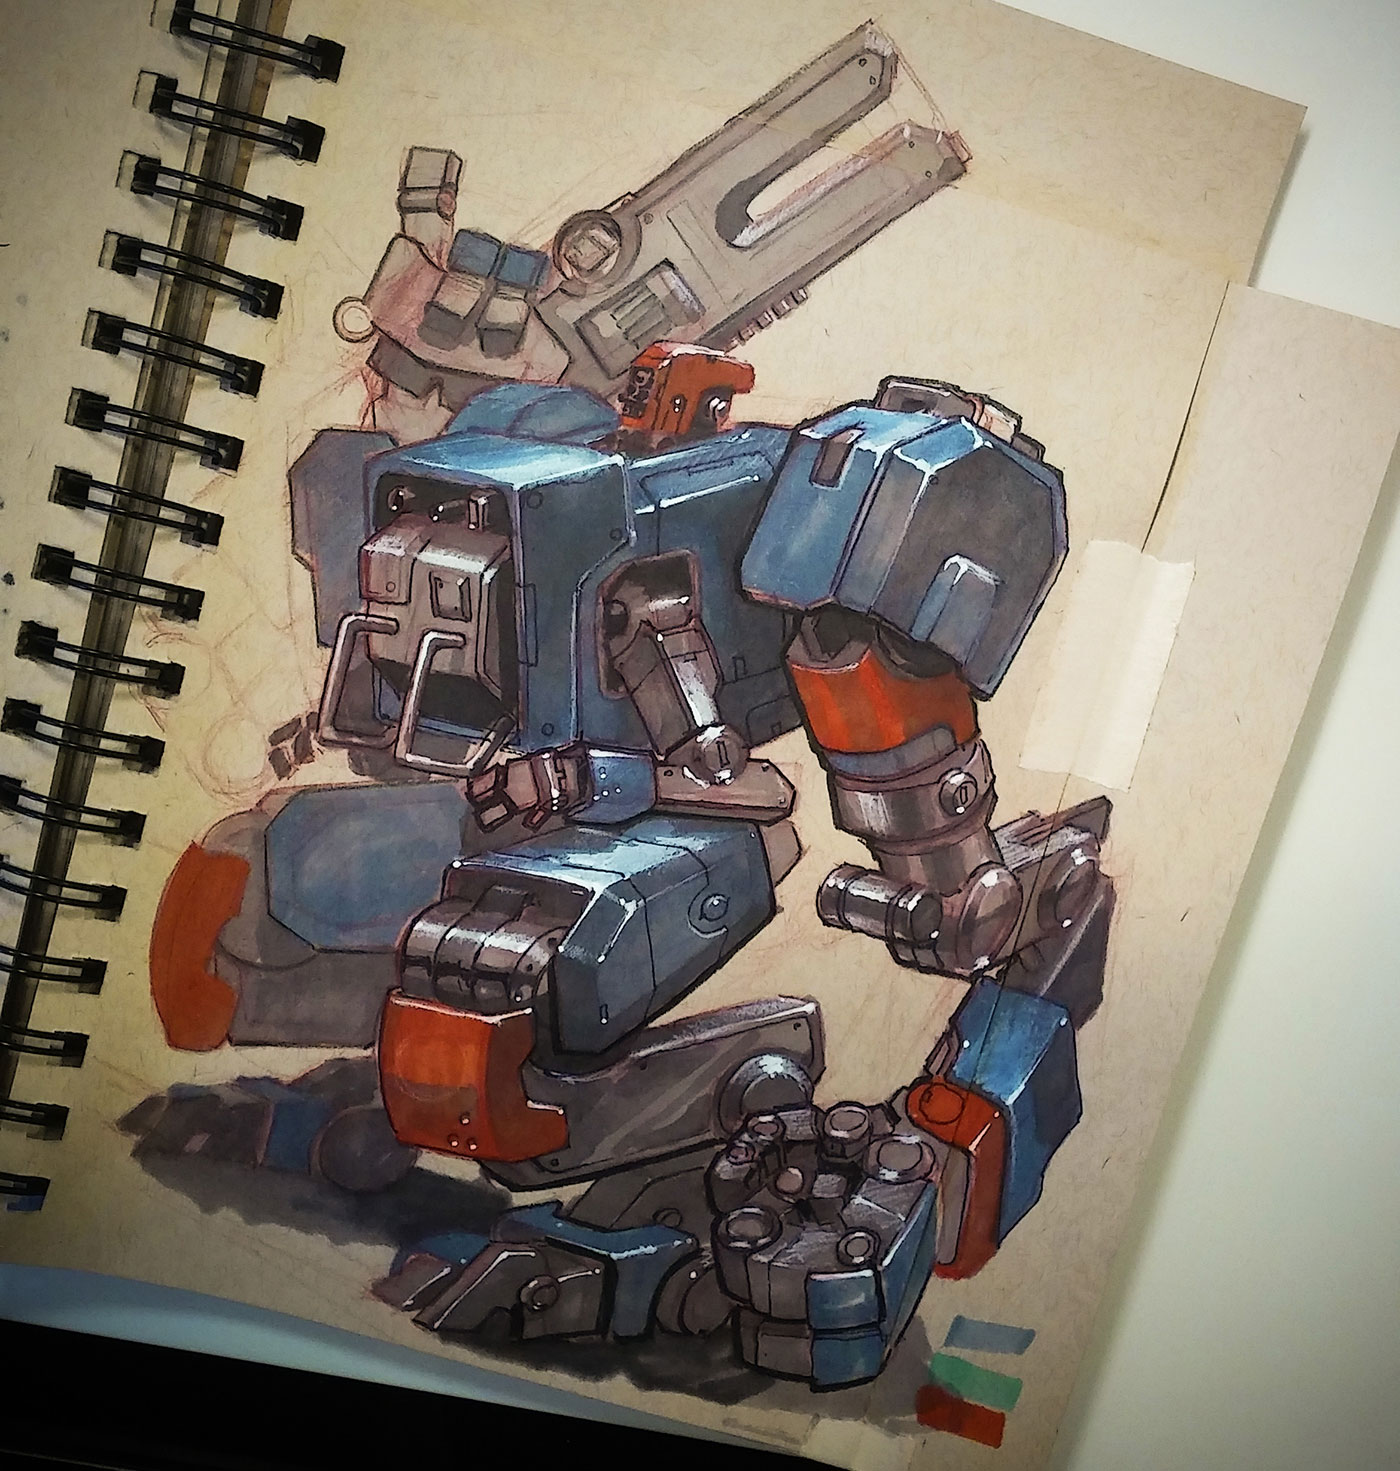 Japanese-style mech drawing